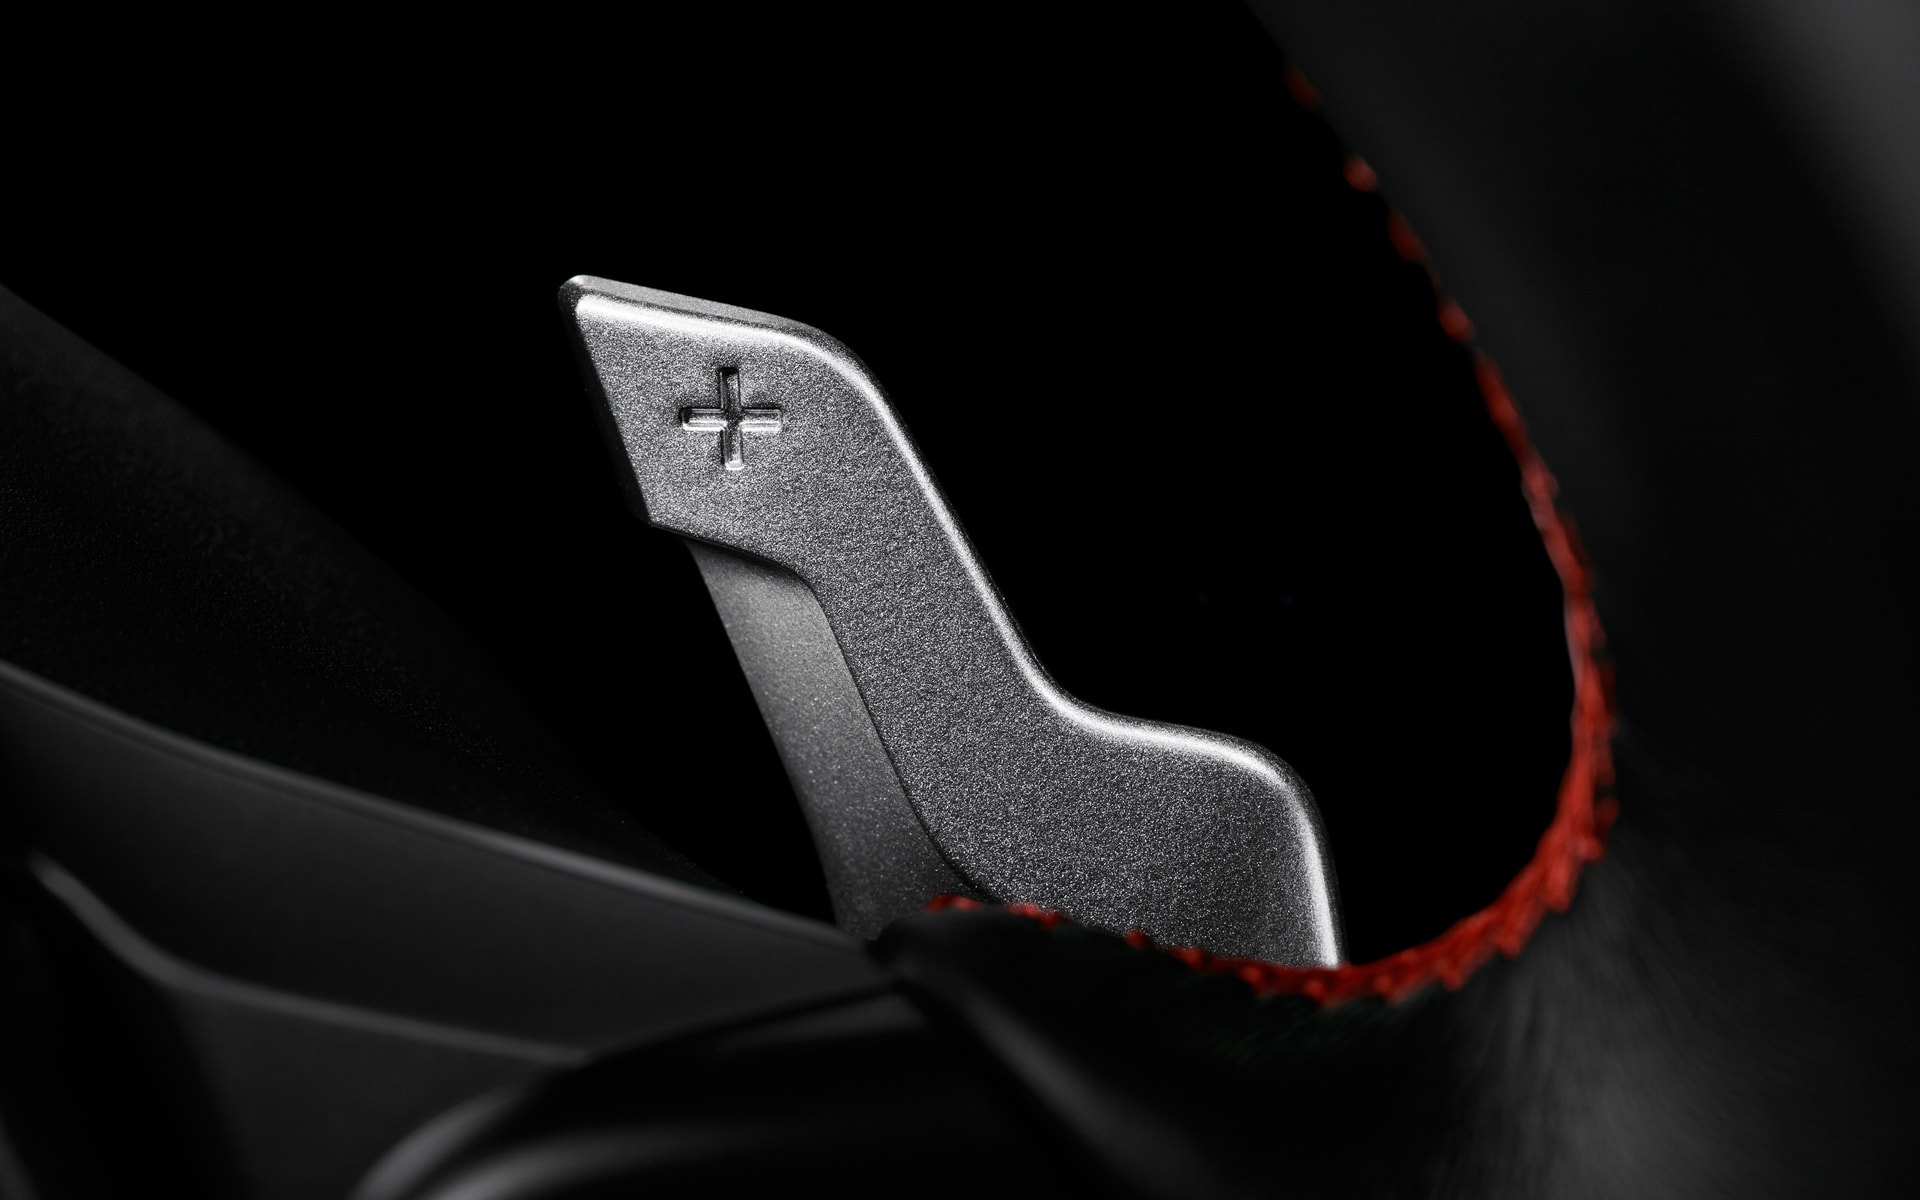 A close-up of the paddle shifters for the 6-speed automatic transmission available in the 2020 BRZ.